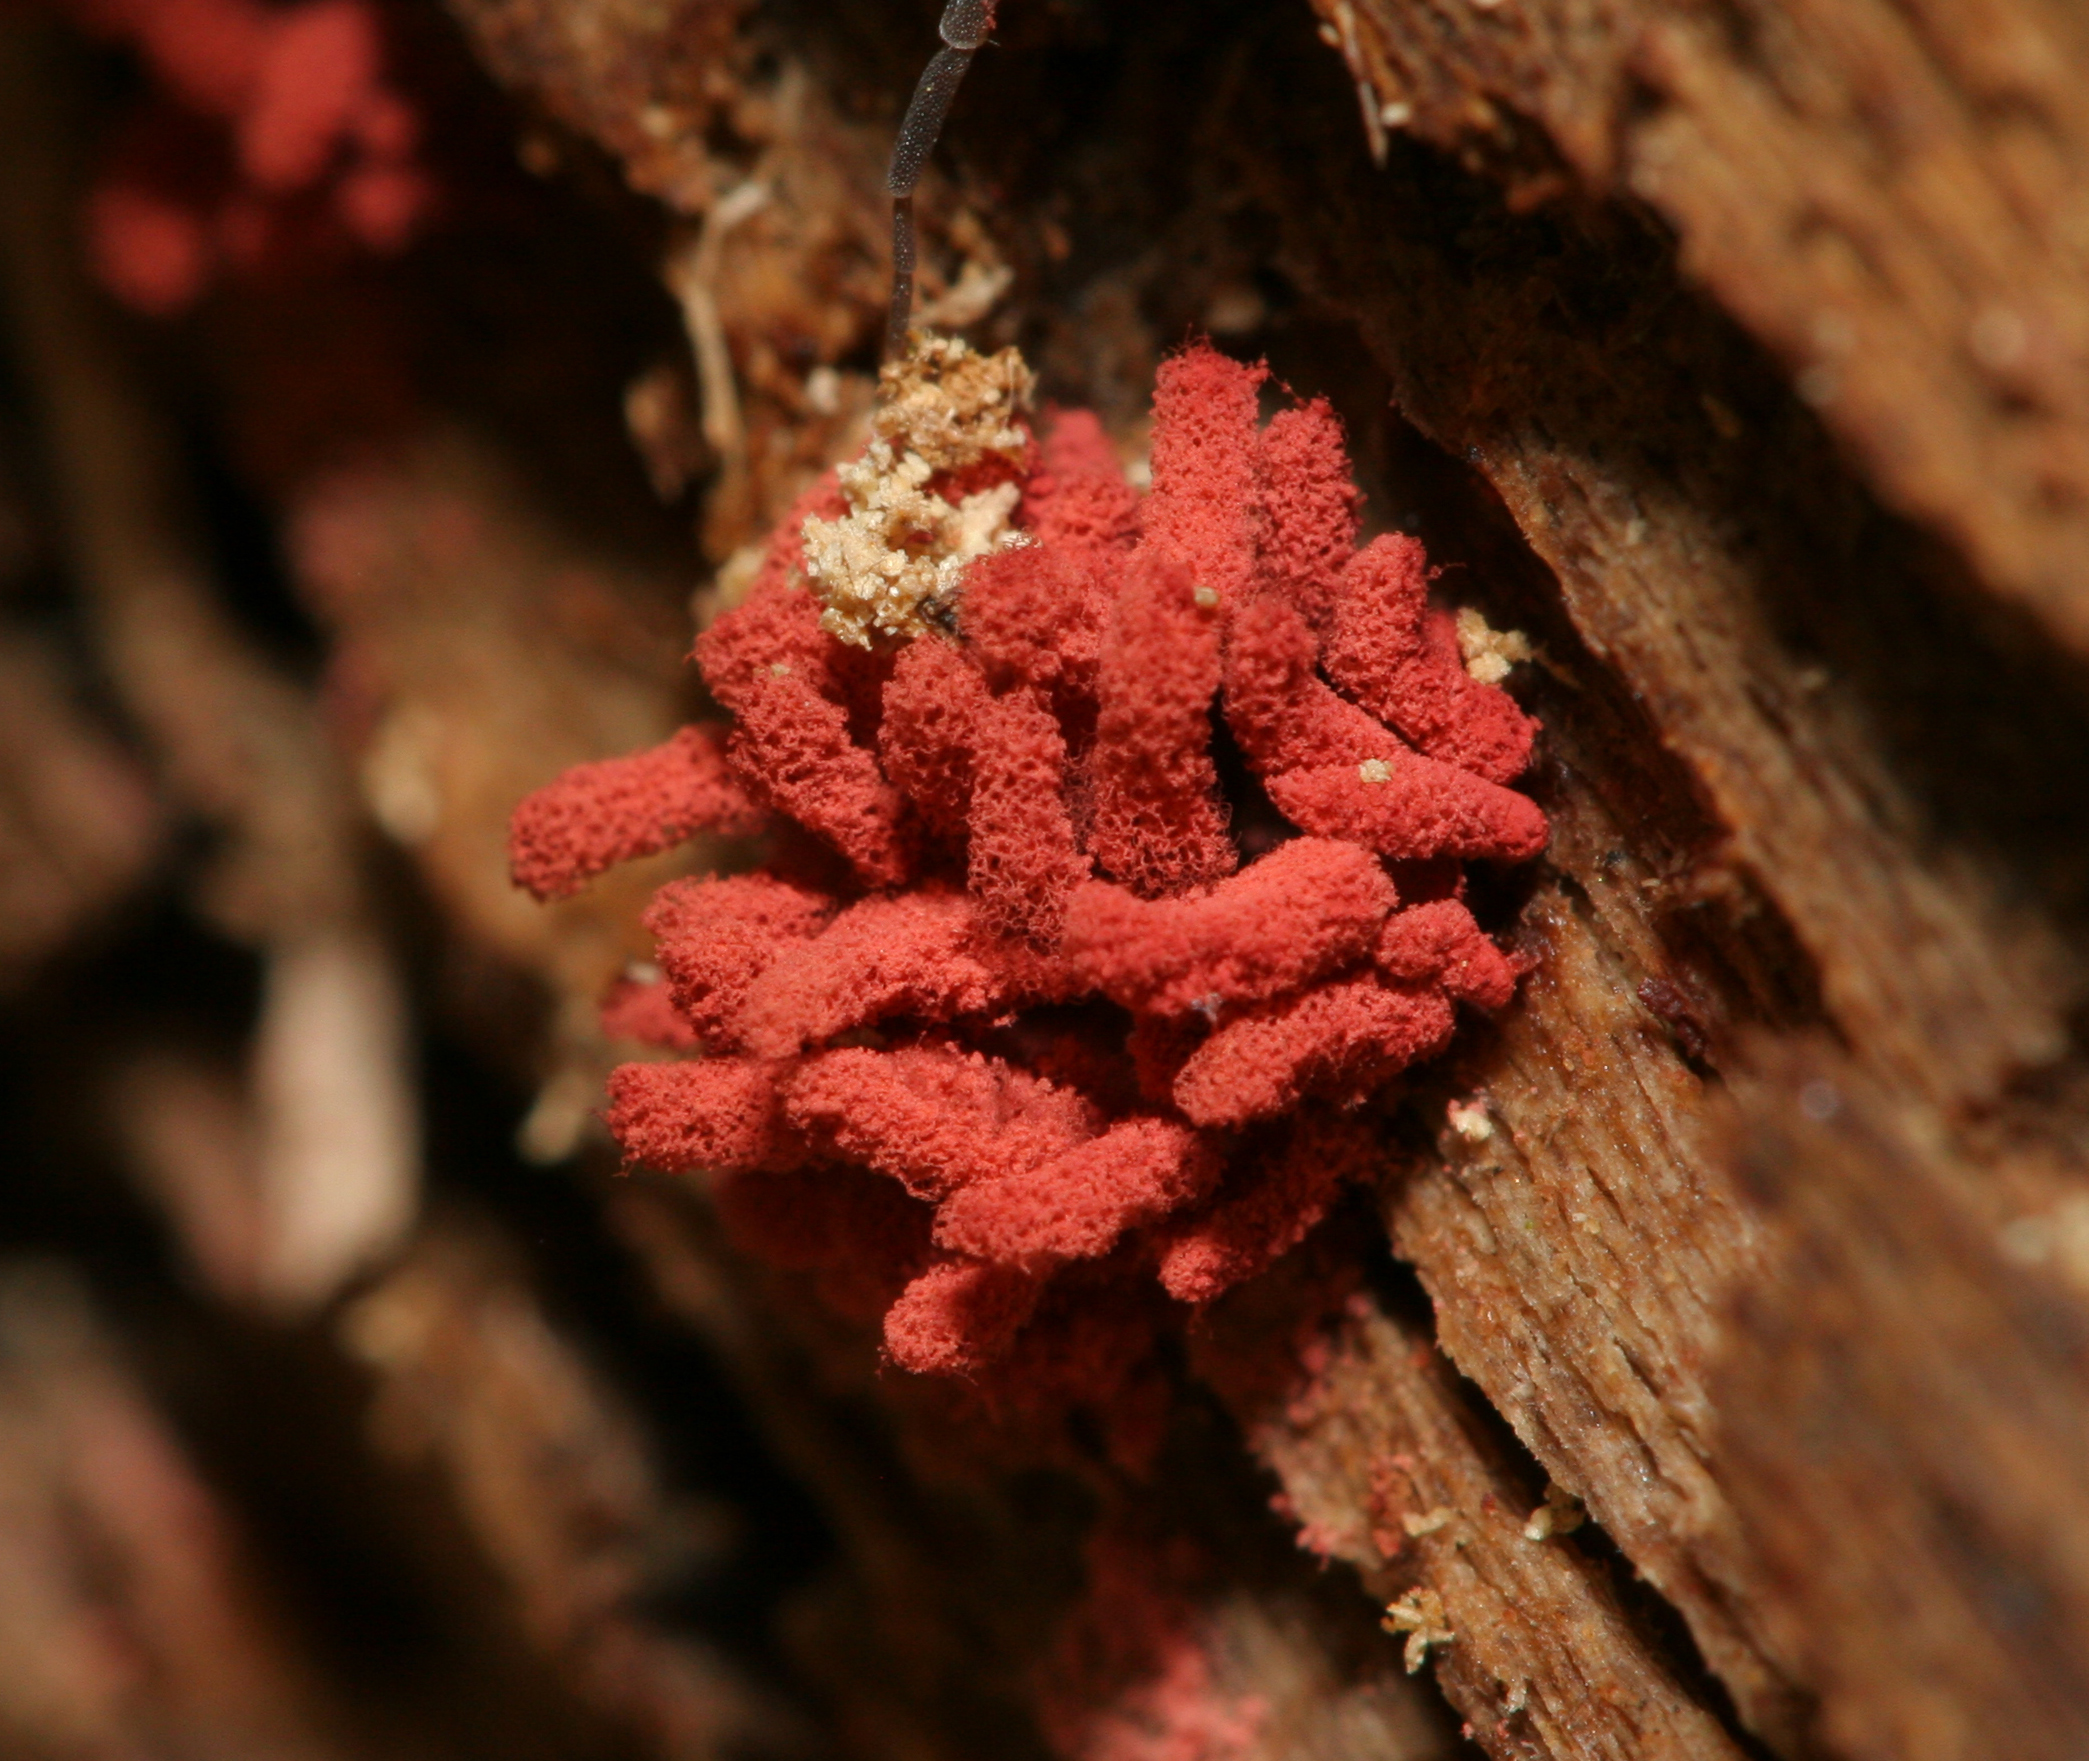 Is Mold Or Fiungus On Bark Poisonous To Dogs